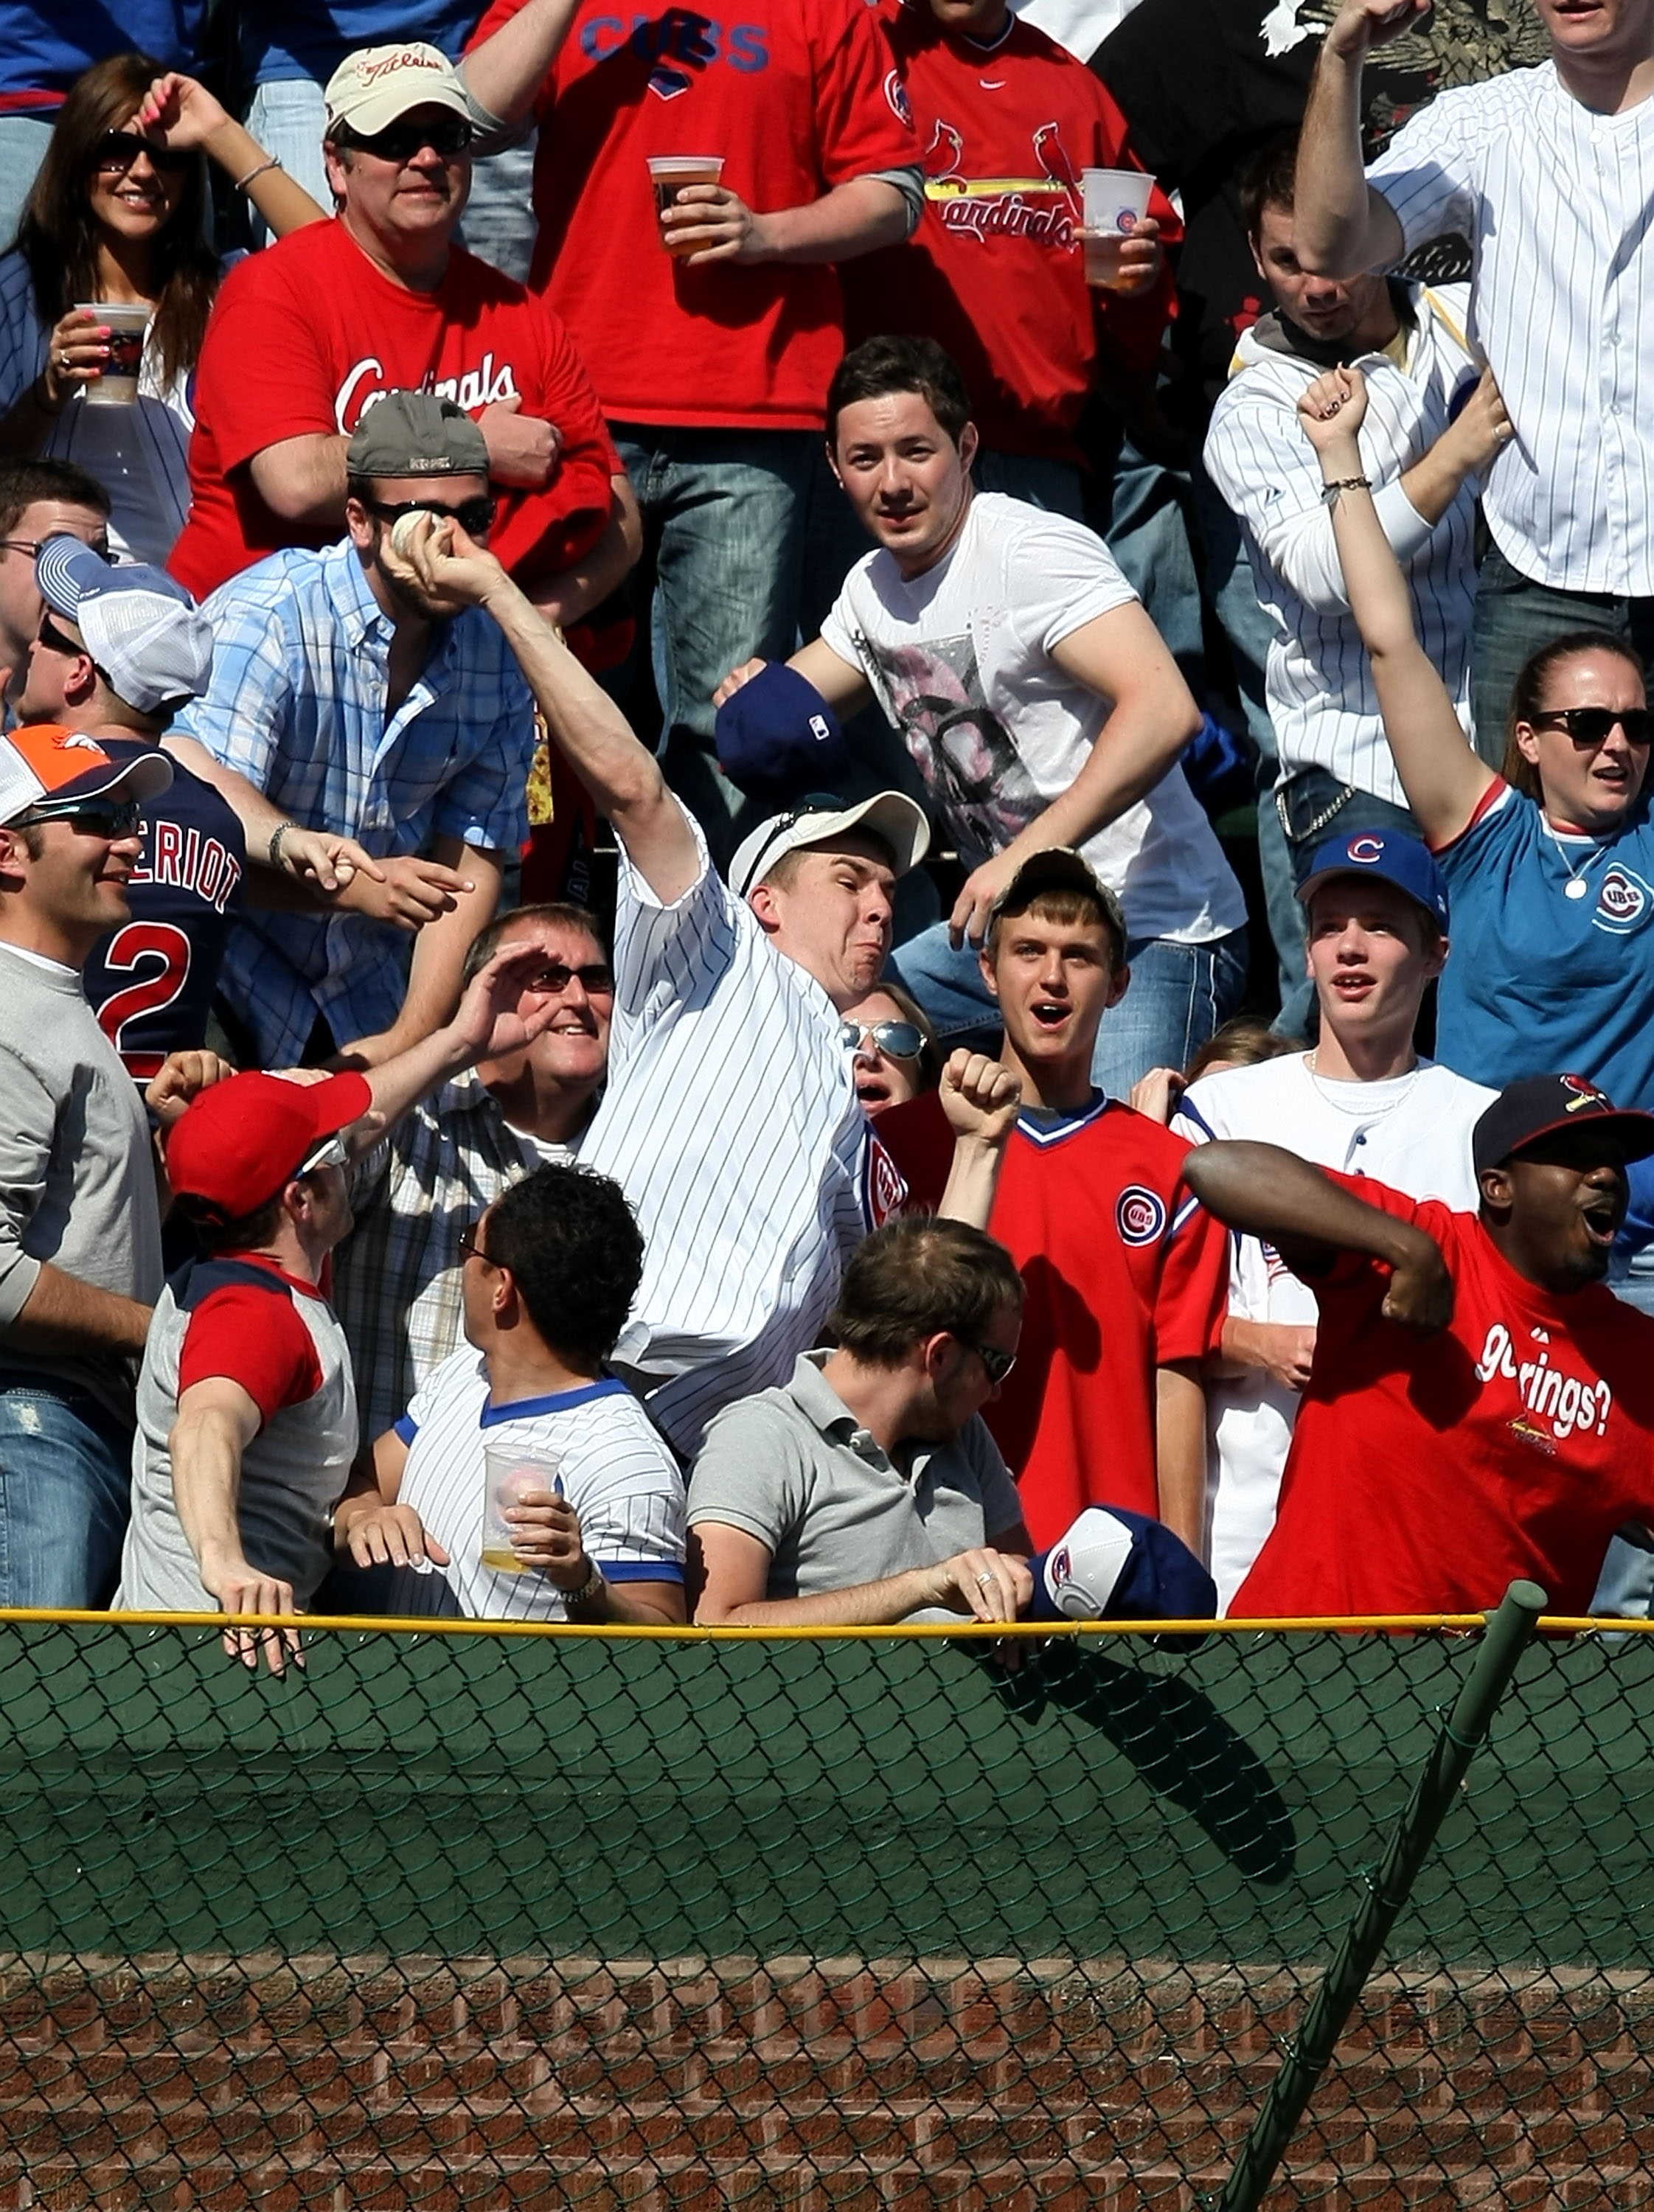 CHICAGO - APRIL 17: A Chicago Cubs fan in the left field bleachers throws back a home run ball hit by Ryan Ludwick of the St. Louis Cardinals in the 7th inning on April 17, 2009 at Wrigley Field in Chicago, Illinois. The Cubs defeated the Cardinals 8-7. (